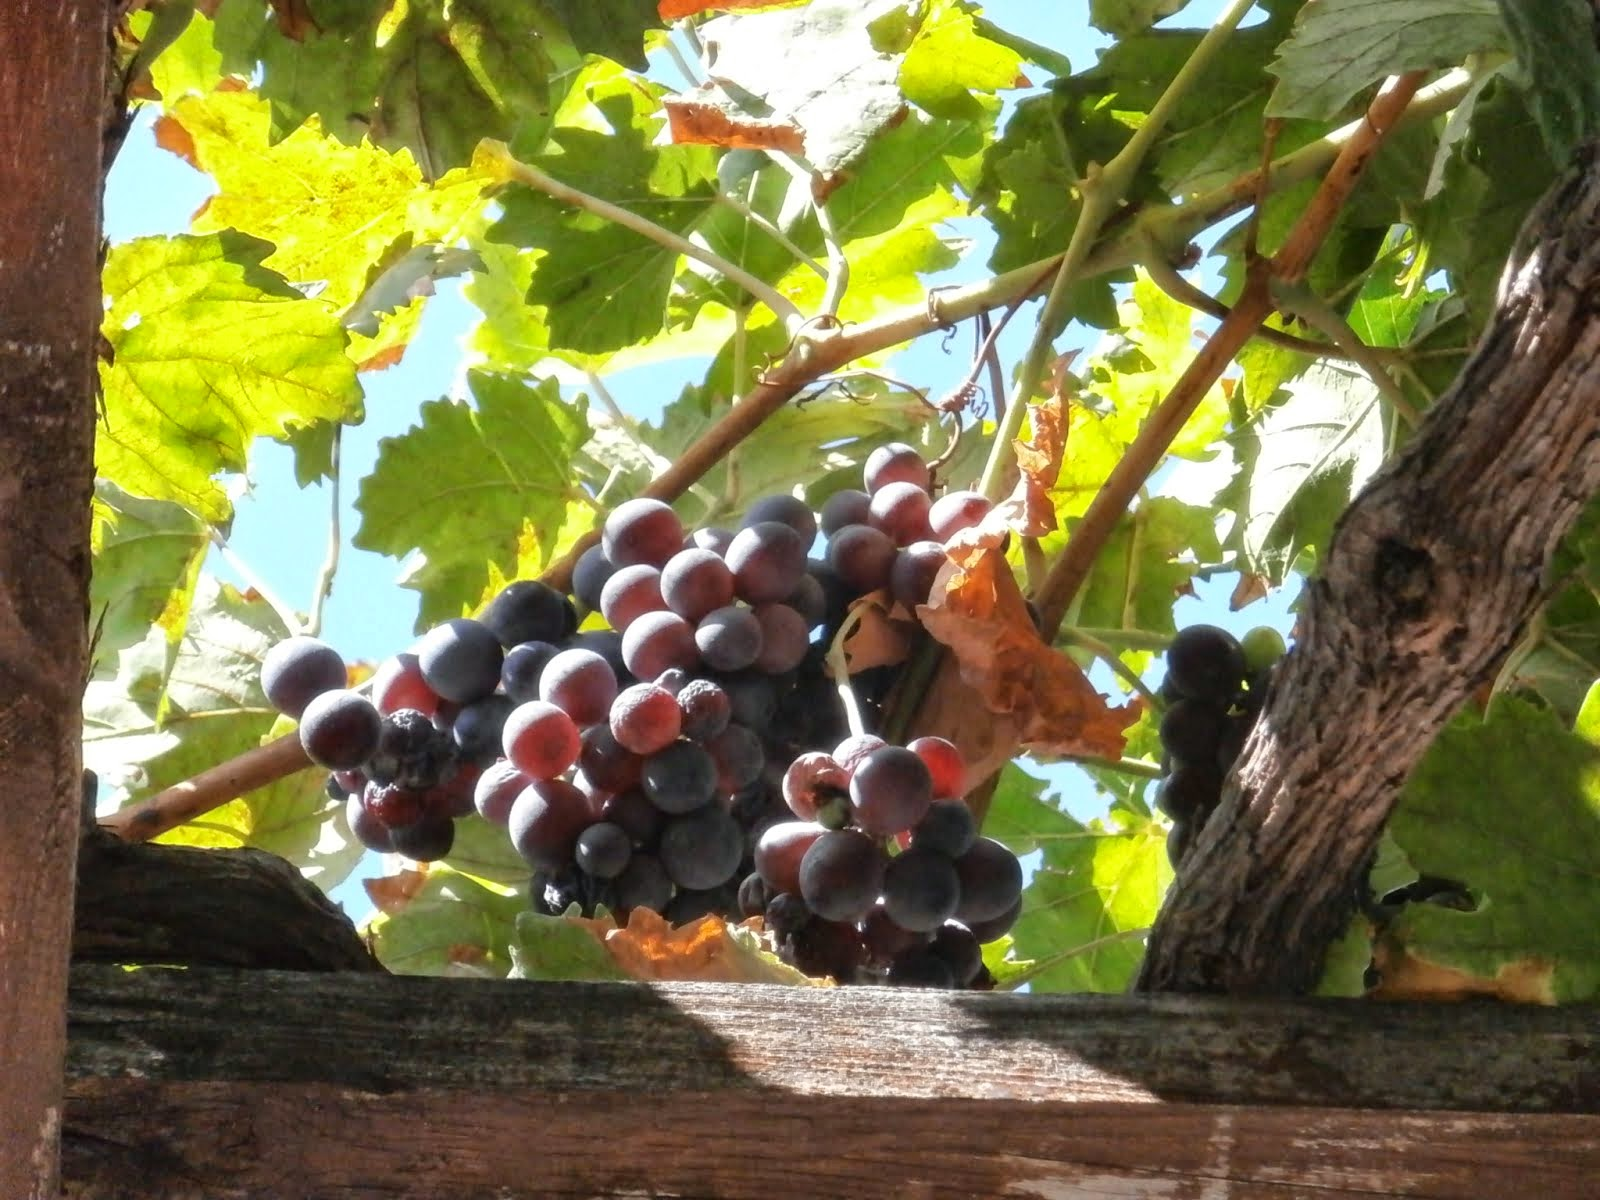 Grapes, Sunset Restaurant, Chorafakia, Crete, September 2014